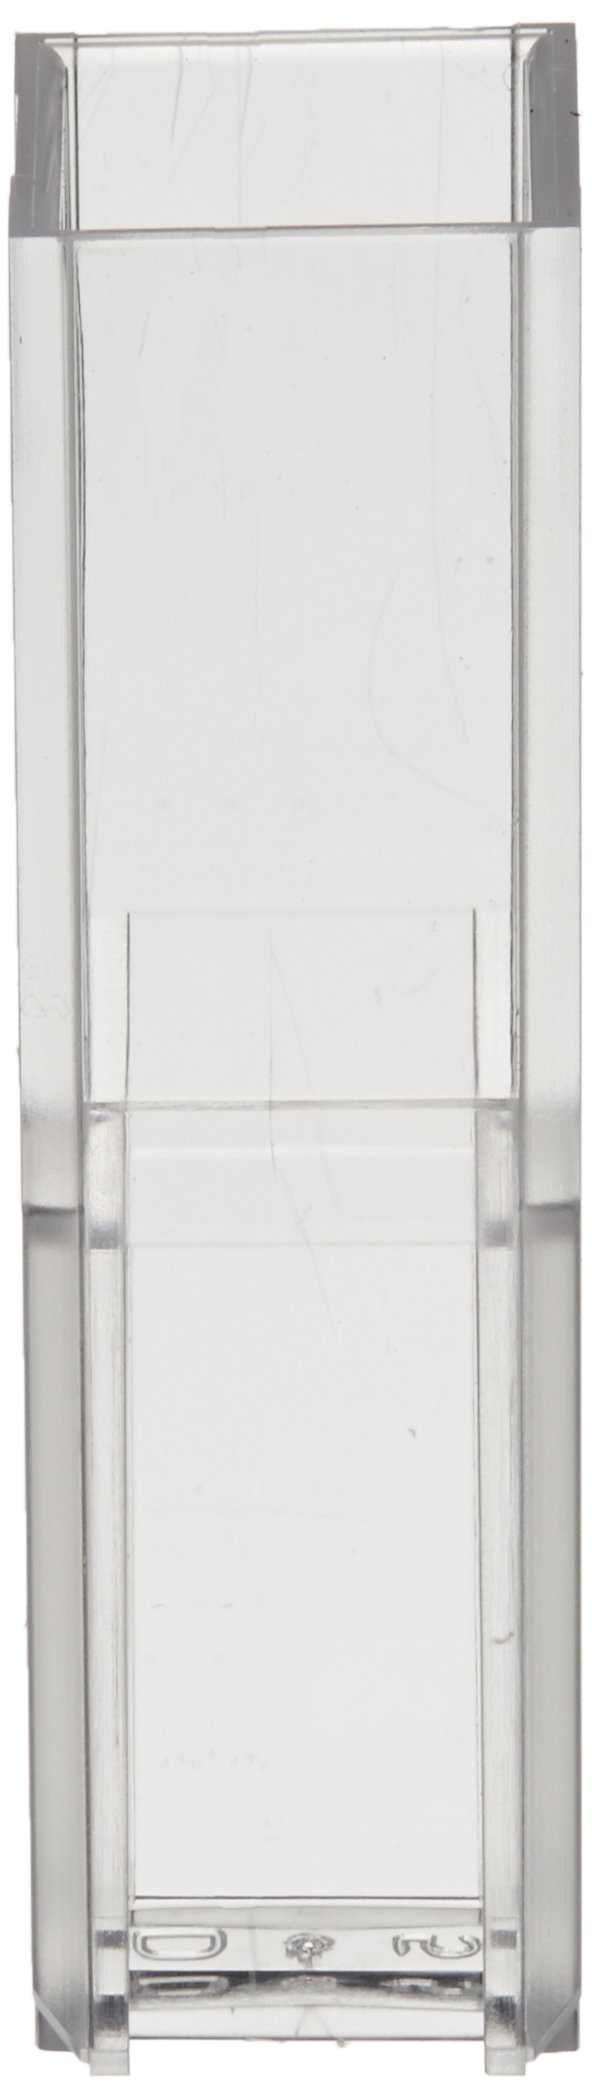 Jenway 060-087 Plastic Disposable Cuvette for Spectrophotometry, Visible Wavelength, 10mm Path Length, 1.5 to 3ml Fill Volume (Pack of 100)